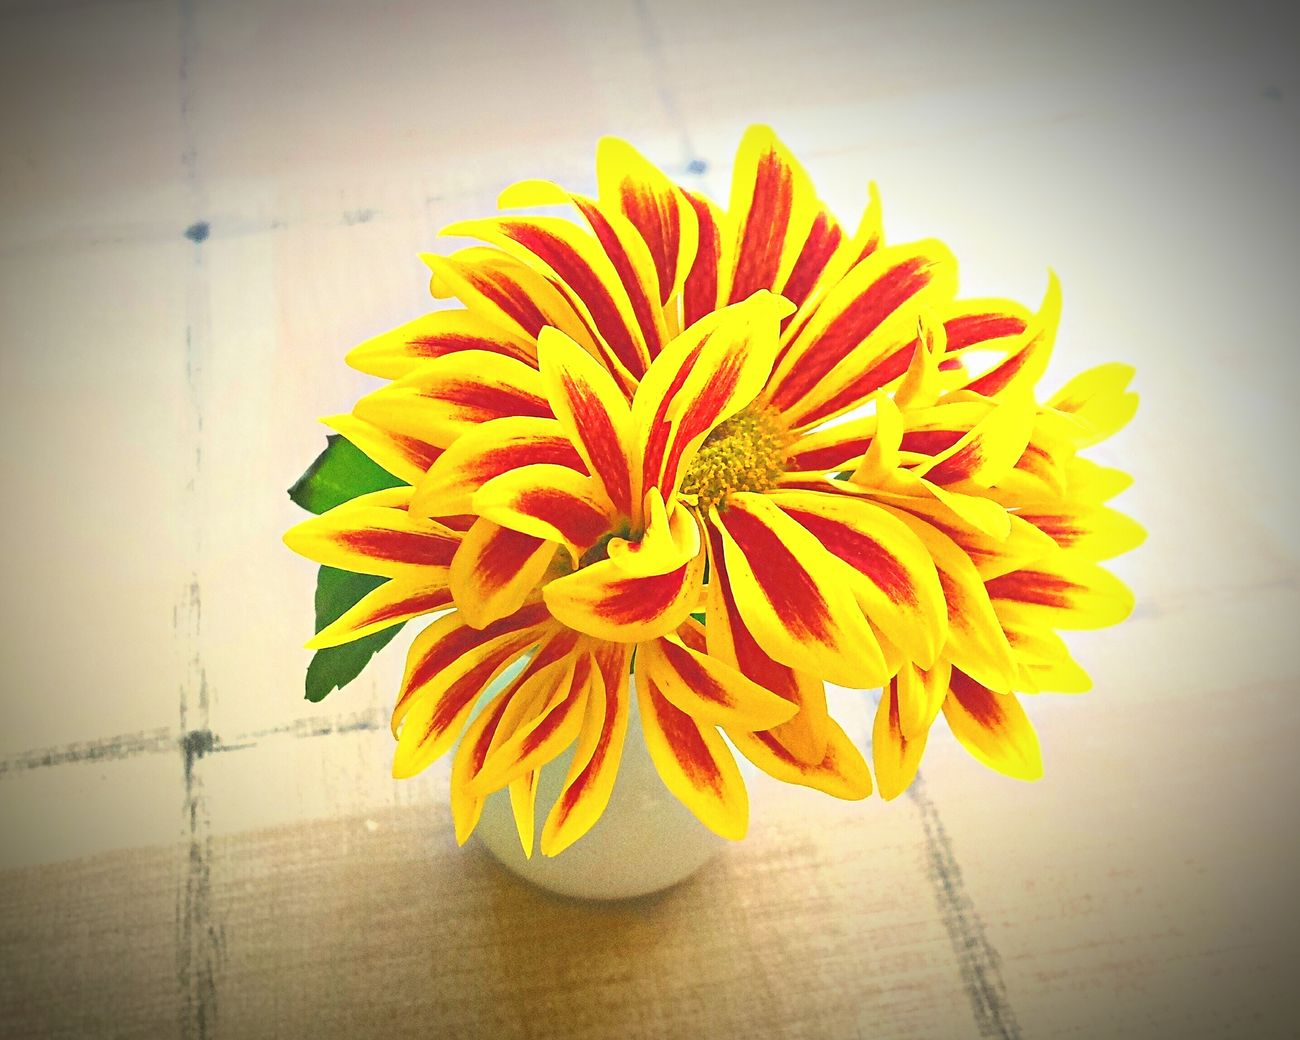 sunshine flowers p hoto Enjoy Flowers Home Sweet Home Photo Deco Live My Style Decoration Light And Shadow Harmonie Harmony Focus On Foreground Scenics Everyday Lives Creativity Kreatives No People Harmony With Nature Naturelovers Plant Style